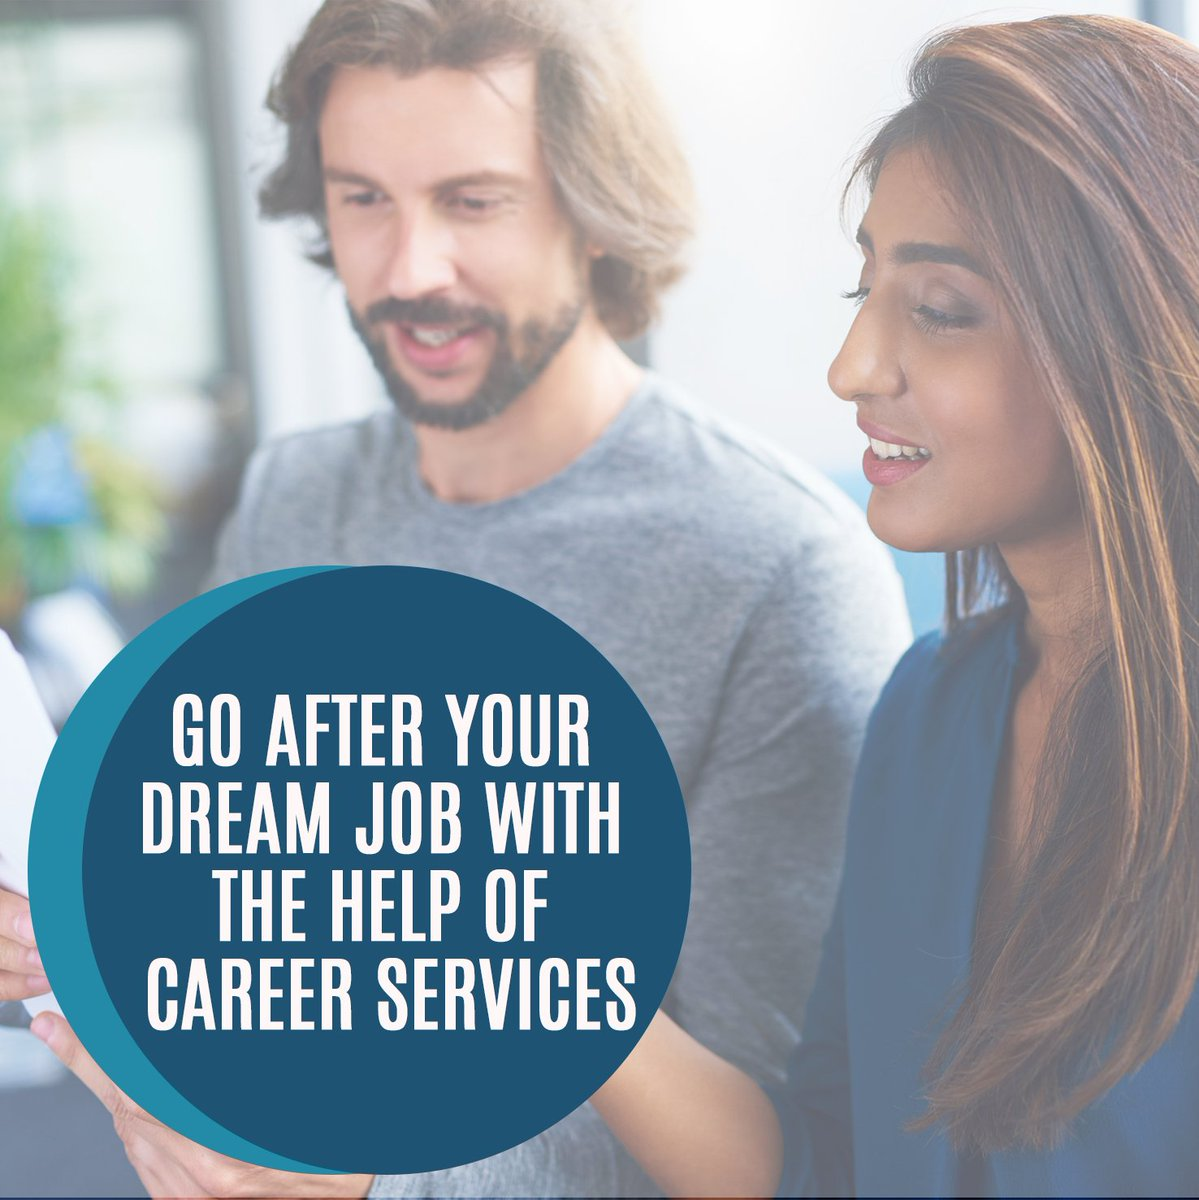 Our #Career Services can help you reach your professional #goals. We offer: Lifelong Career #Counselling Services Career #Workshops Employer Network On-the-Job Training Experience  Discover more:https://hubs.ly/H0ryFWg0   #OxfordCollege #OxfordEdupic.twitter.com/6PqwduchIO